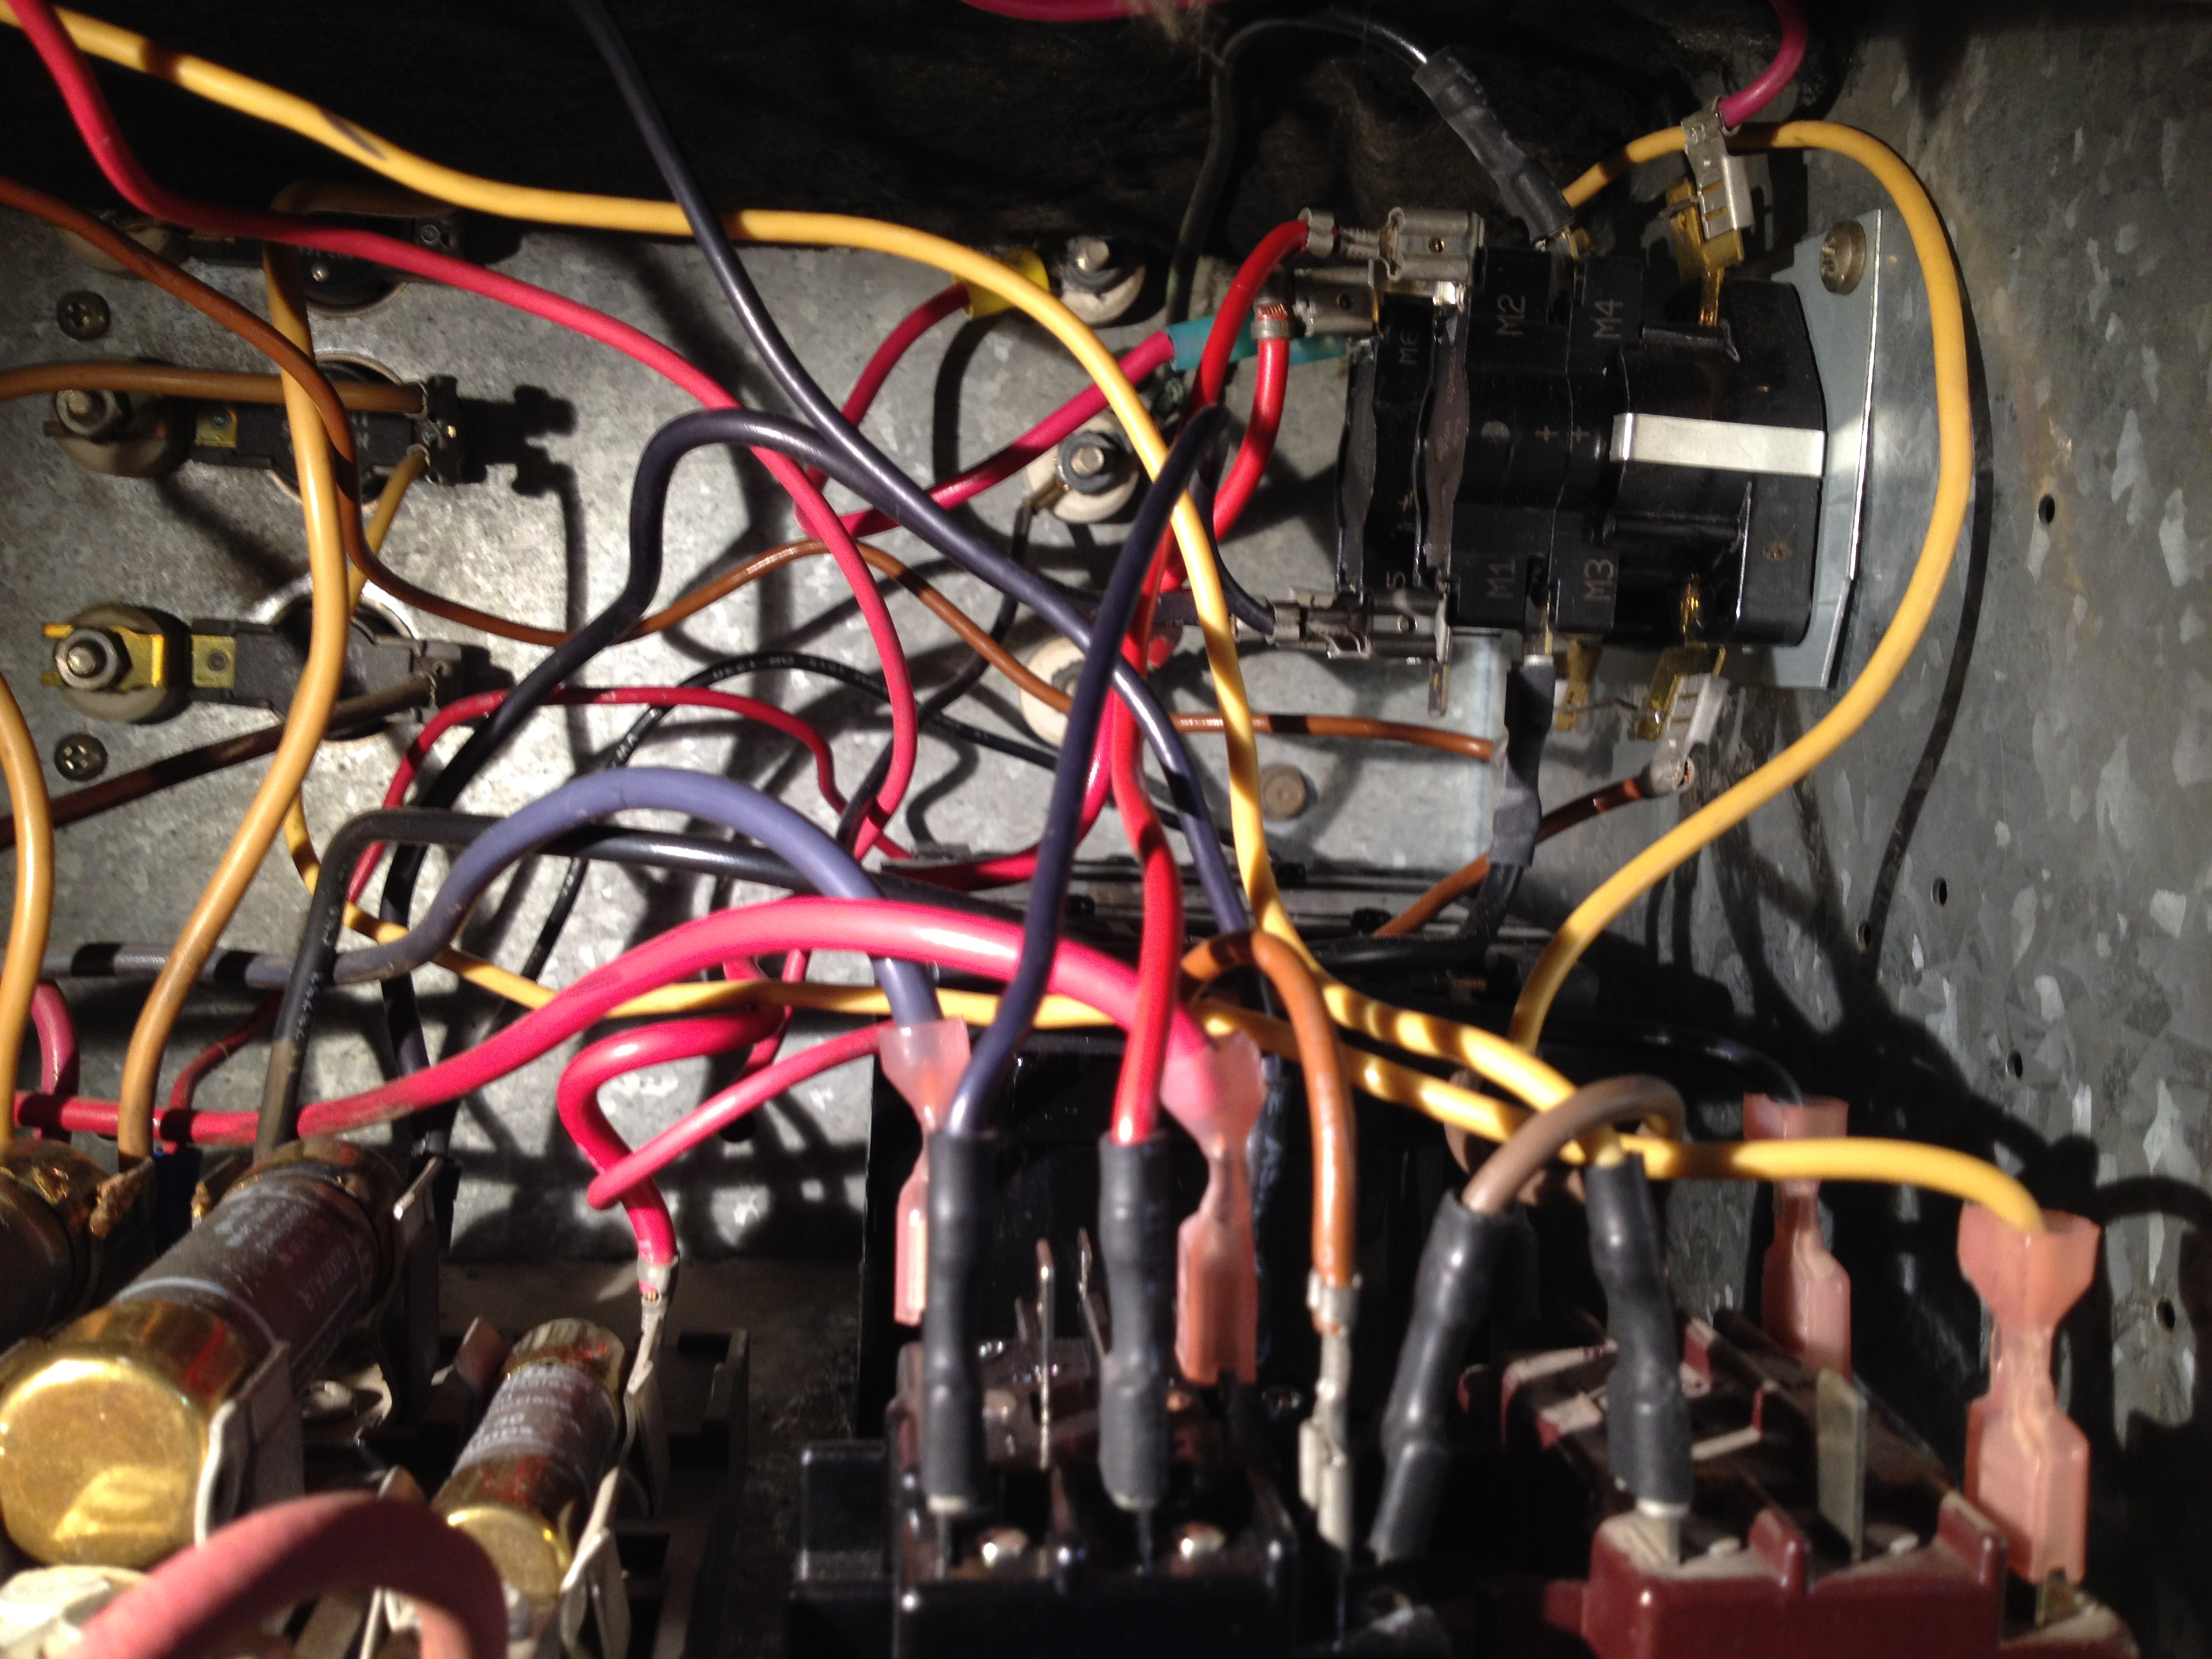 Have Carrier Electric Furnace Fixed Some Parts Now Cant Get The Fan Relay Cost Img 3286